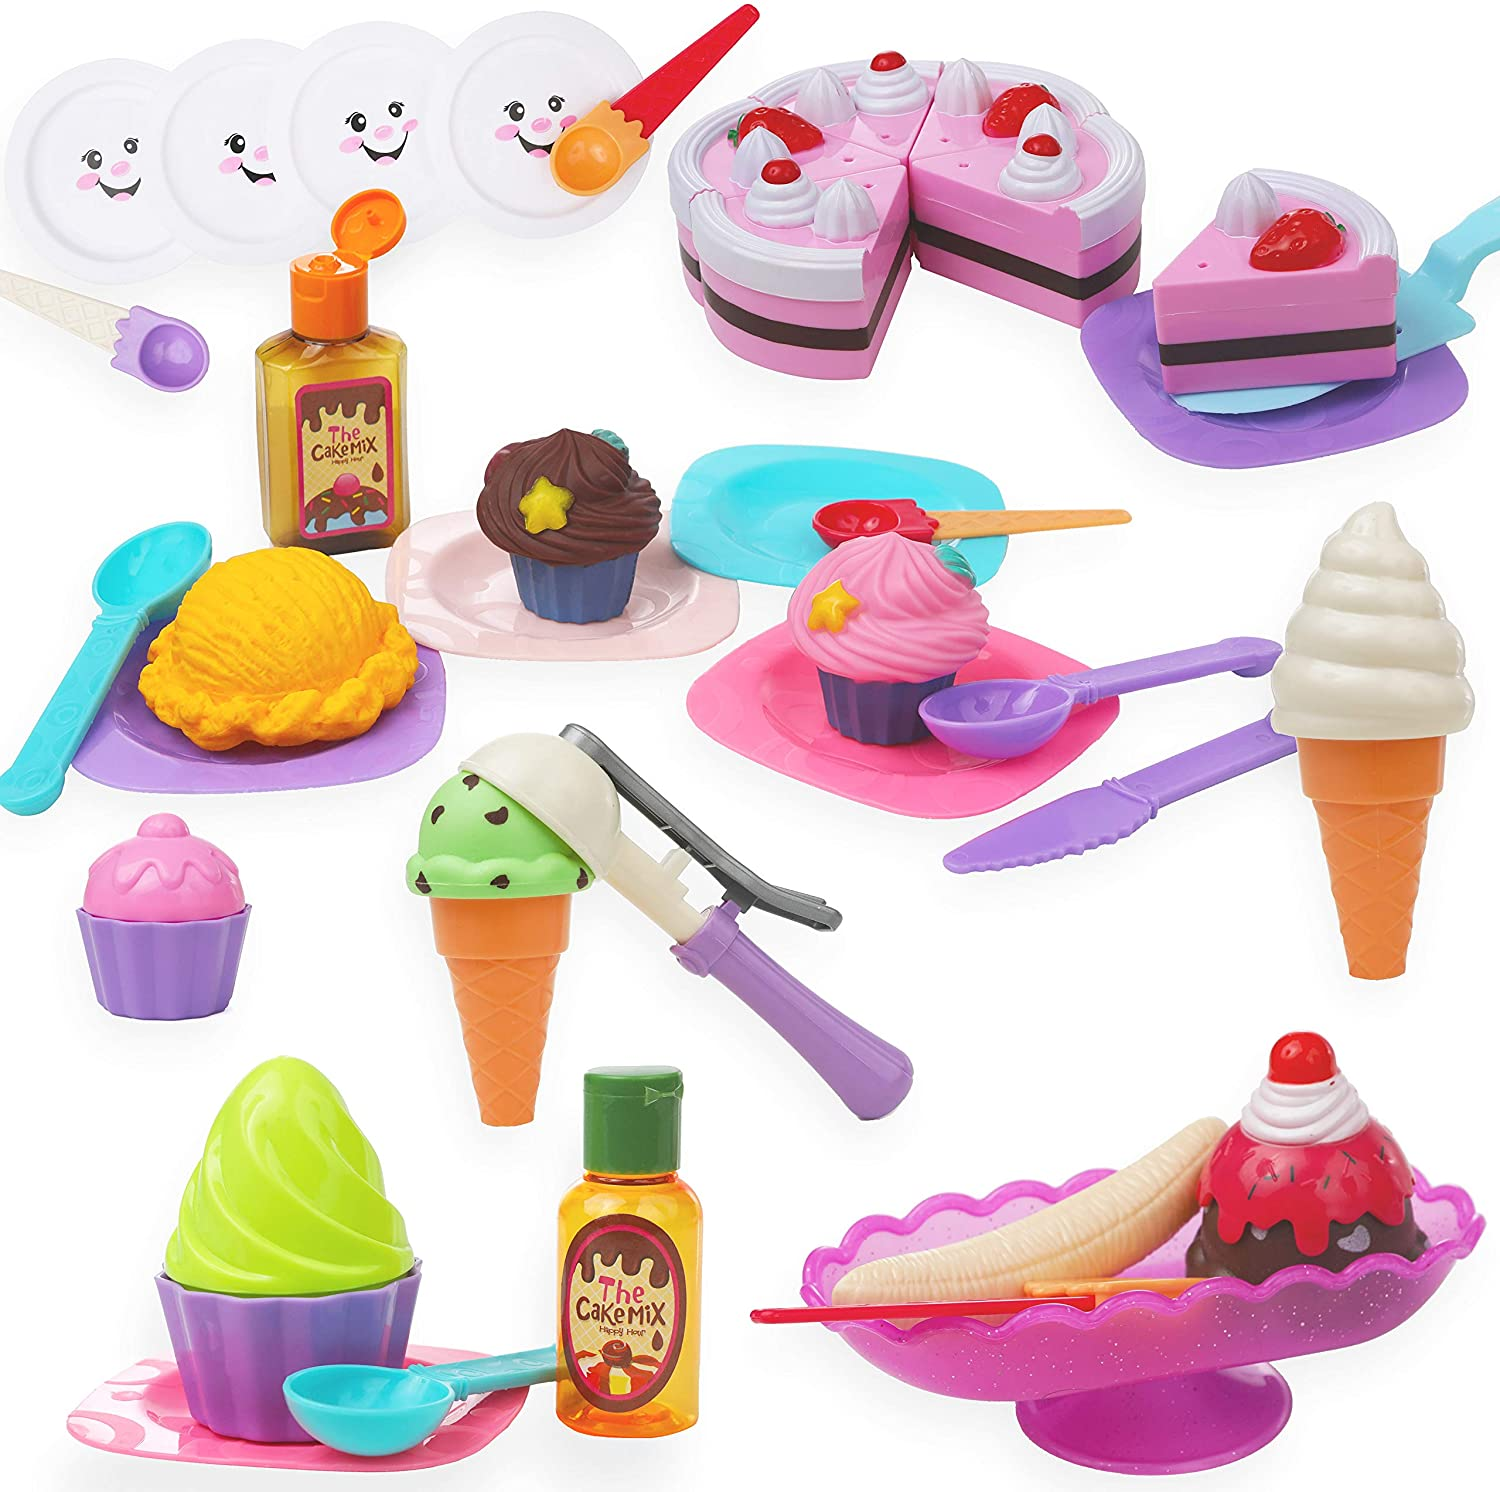 Top Right Toys Ice Cream Toy Playset for Kids - Frozen Dessert Food Kitchen Set with Cake, Ice Cream, Scoops, Cones, and Accessories (58 Pieces)